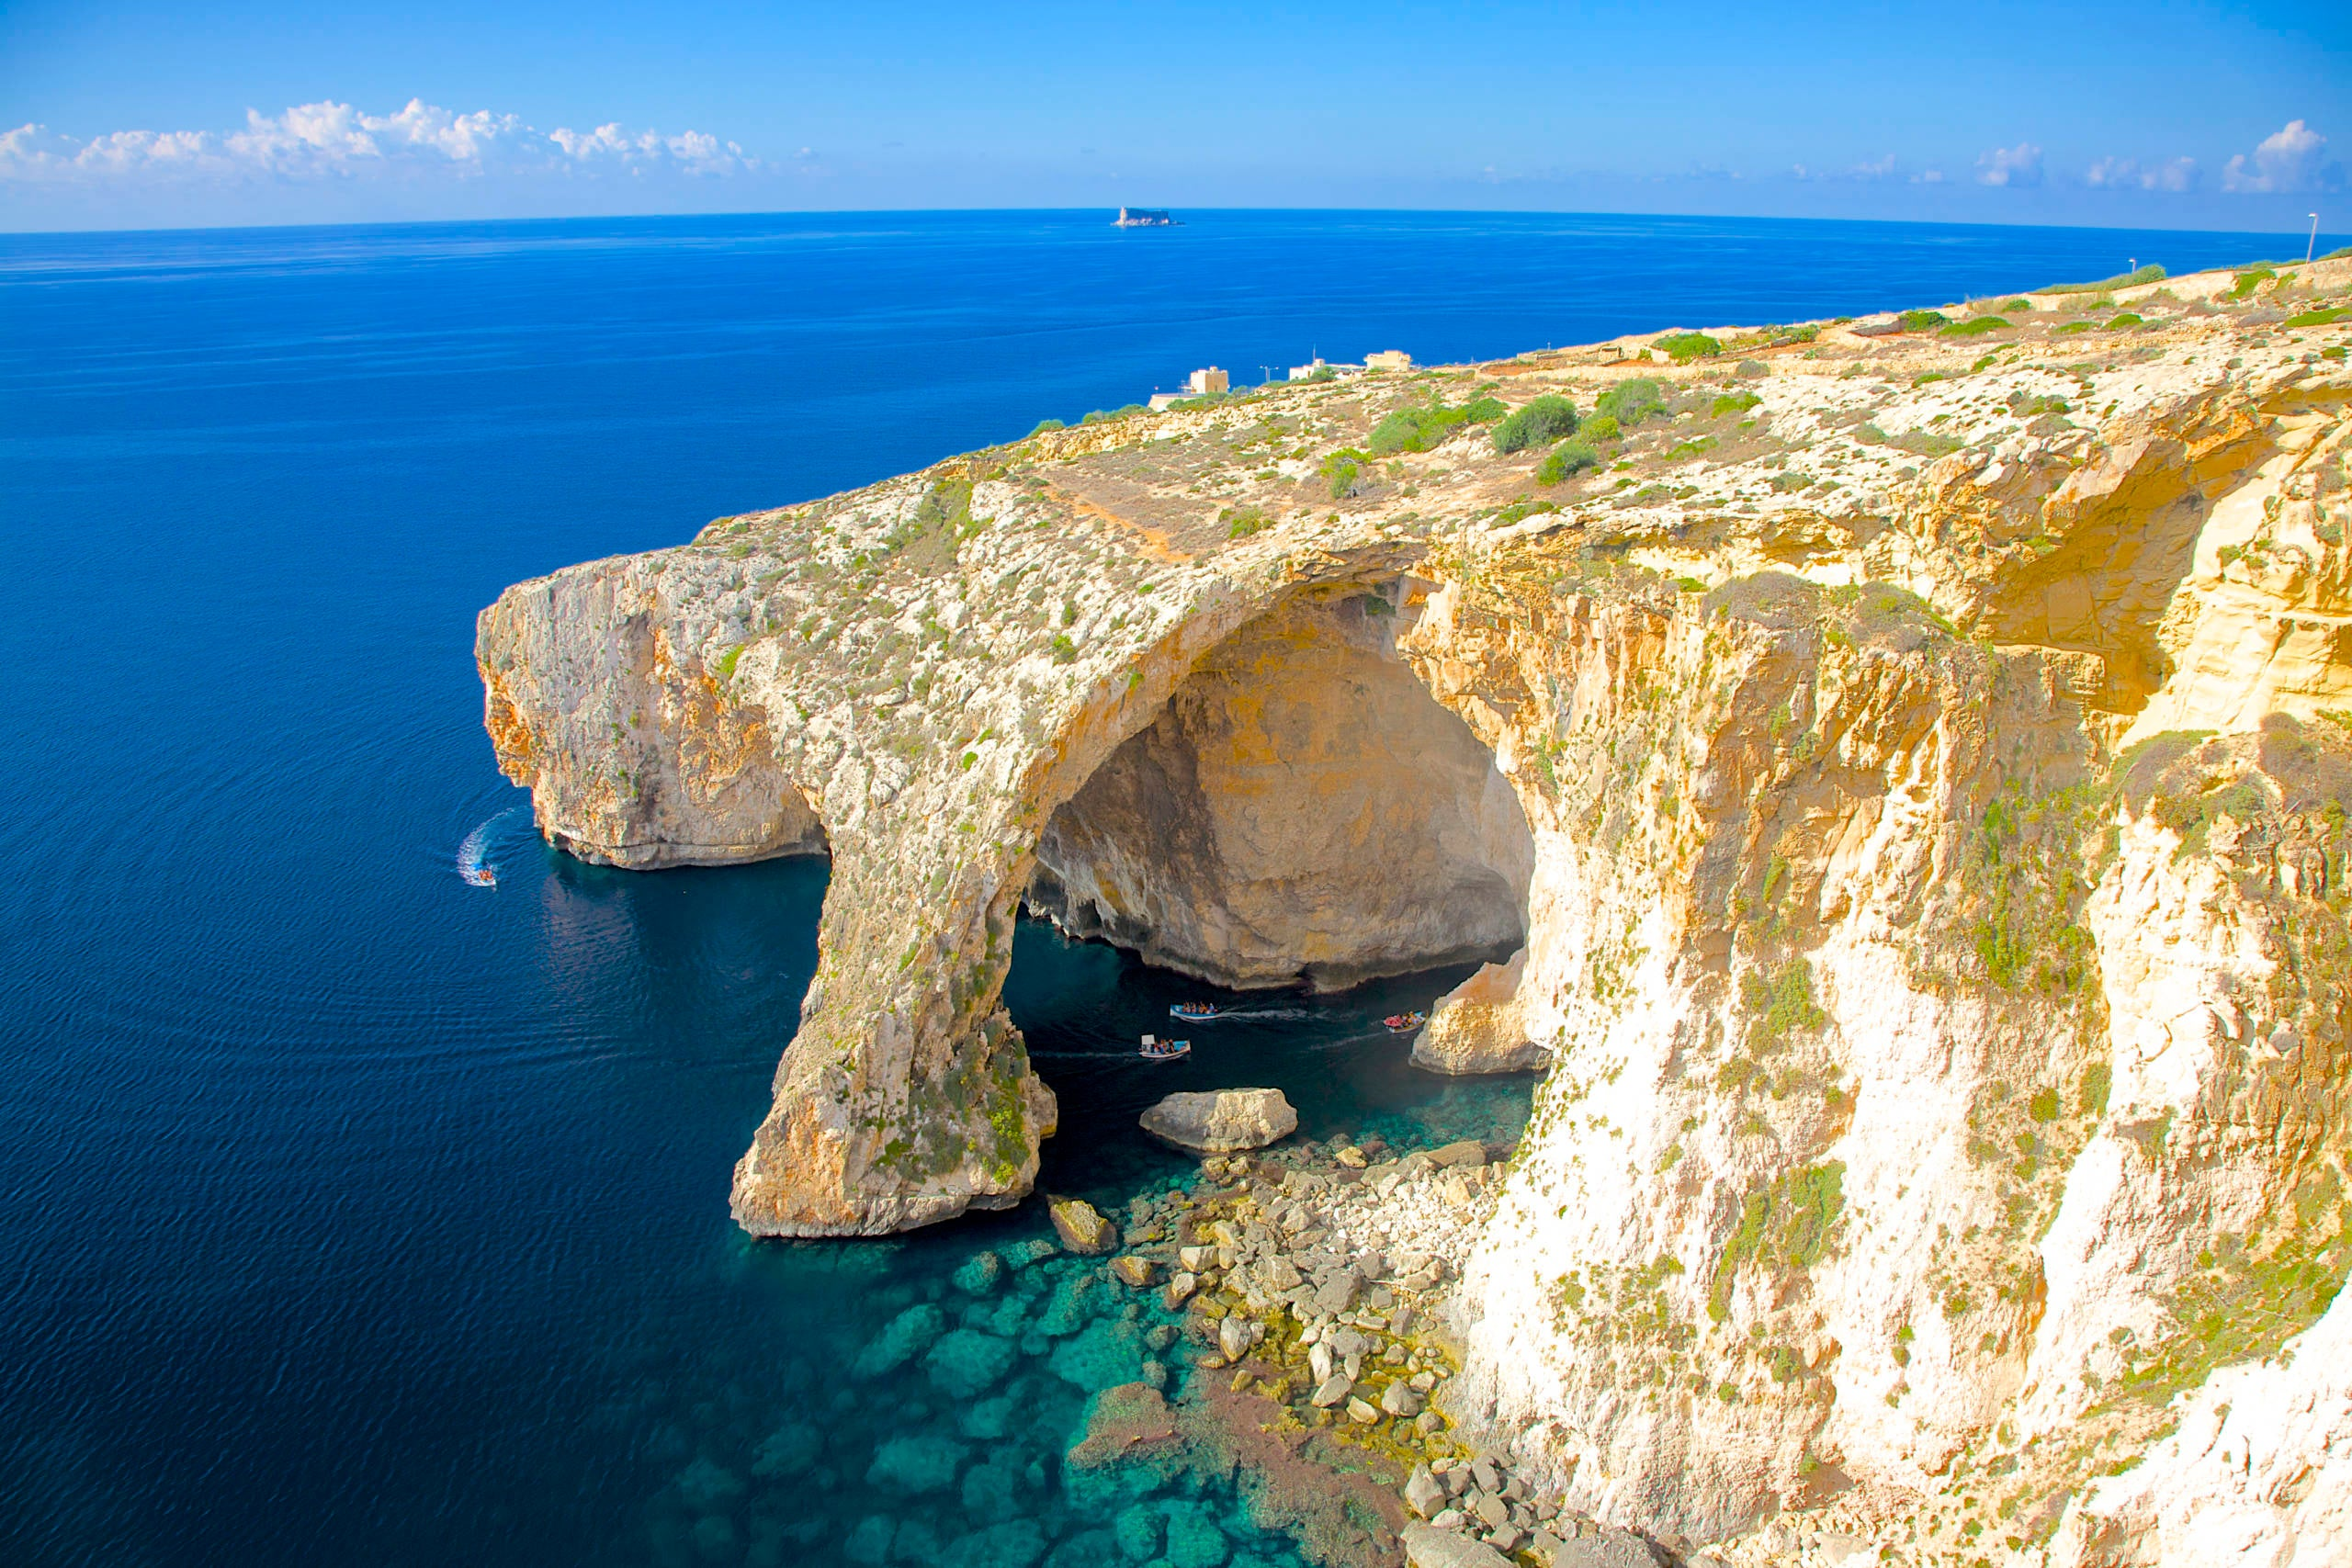 Malta is paying some travelers to go on holiday this summer - The Points Guy